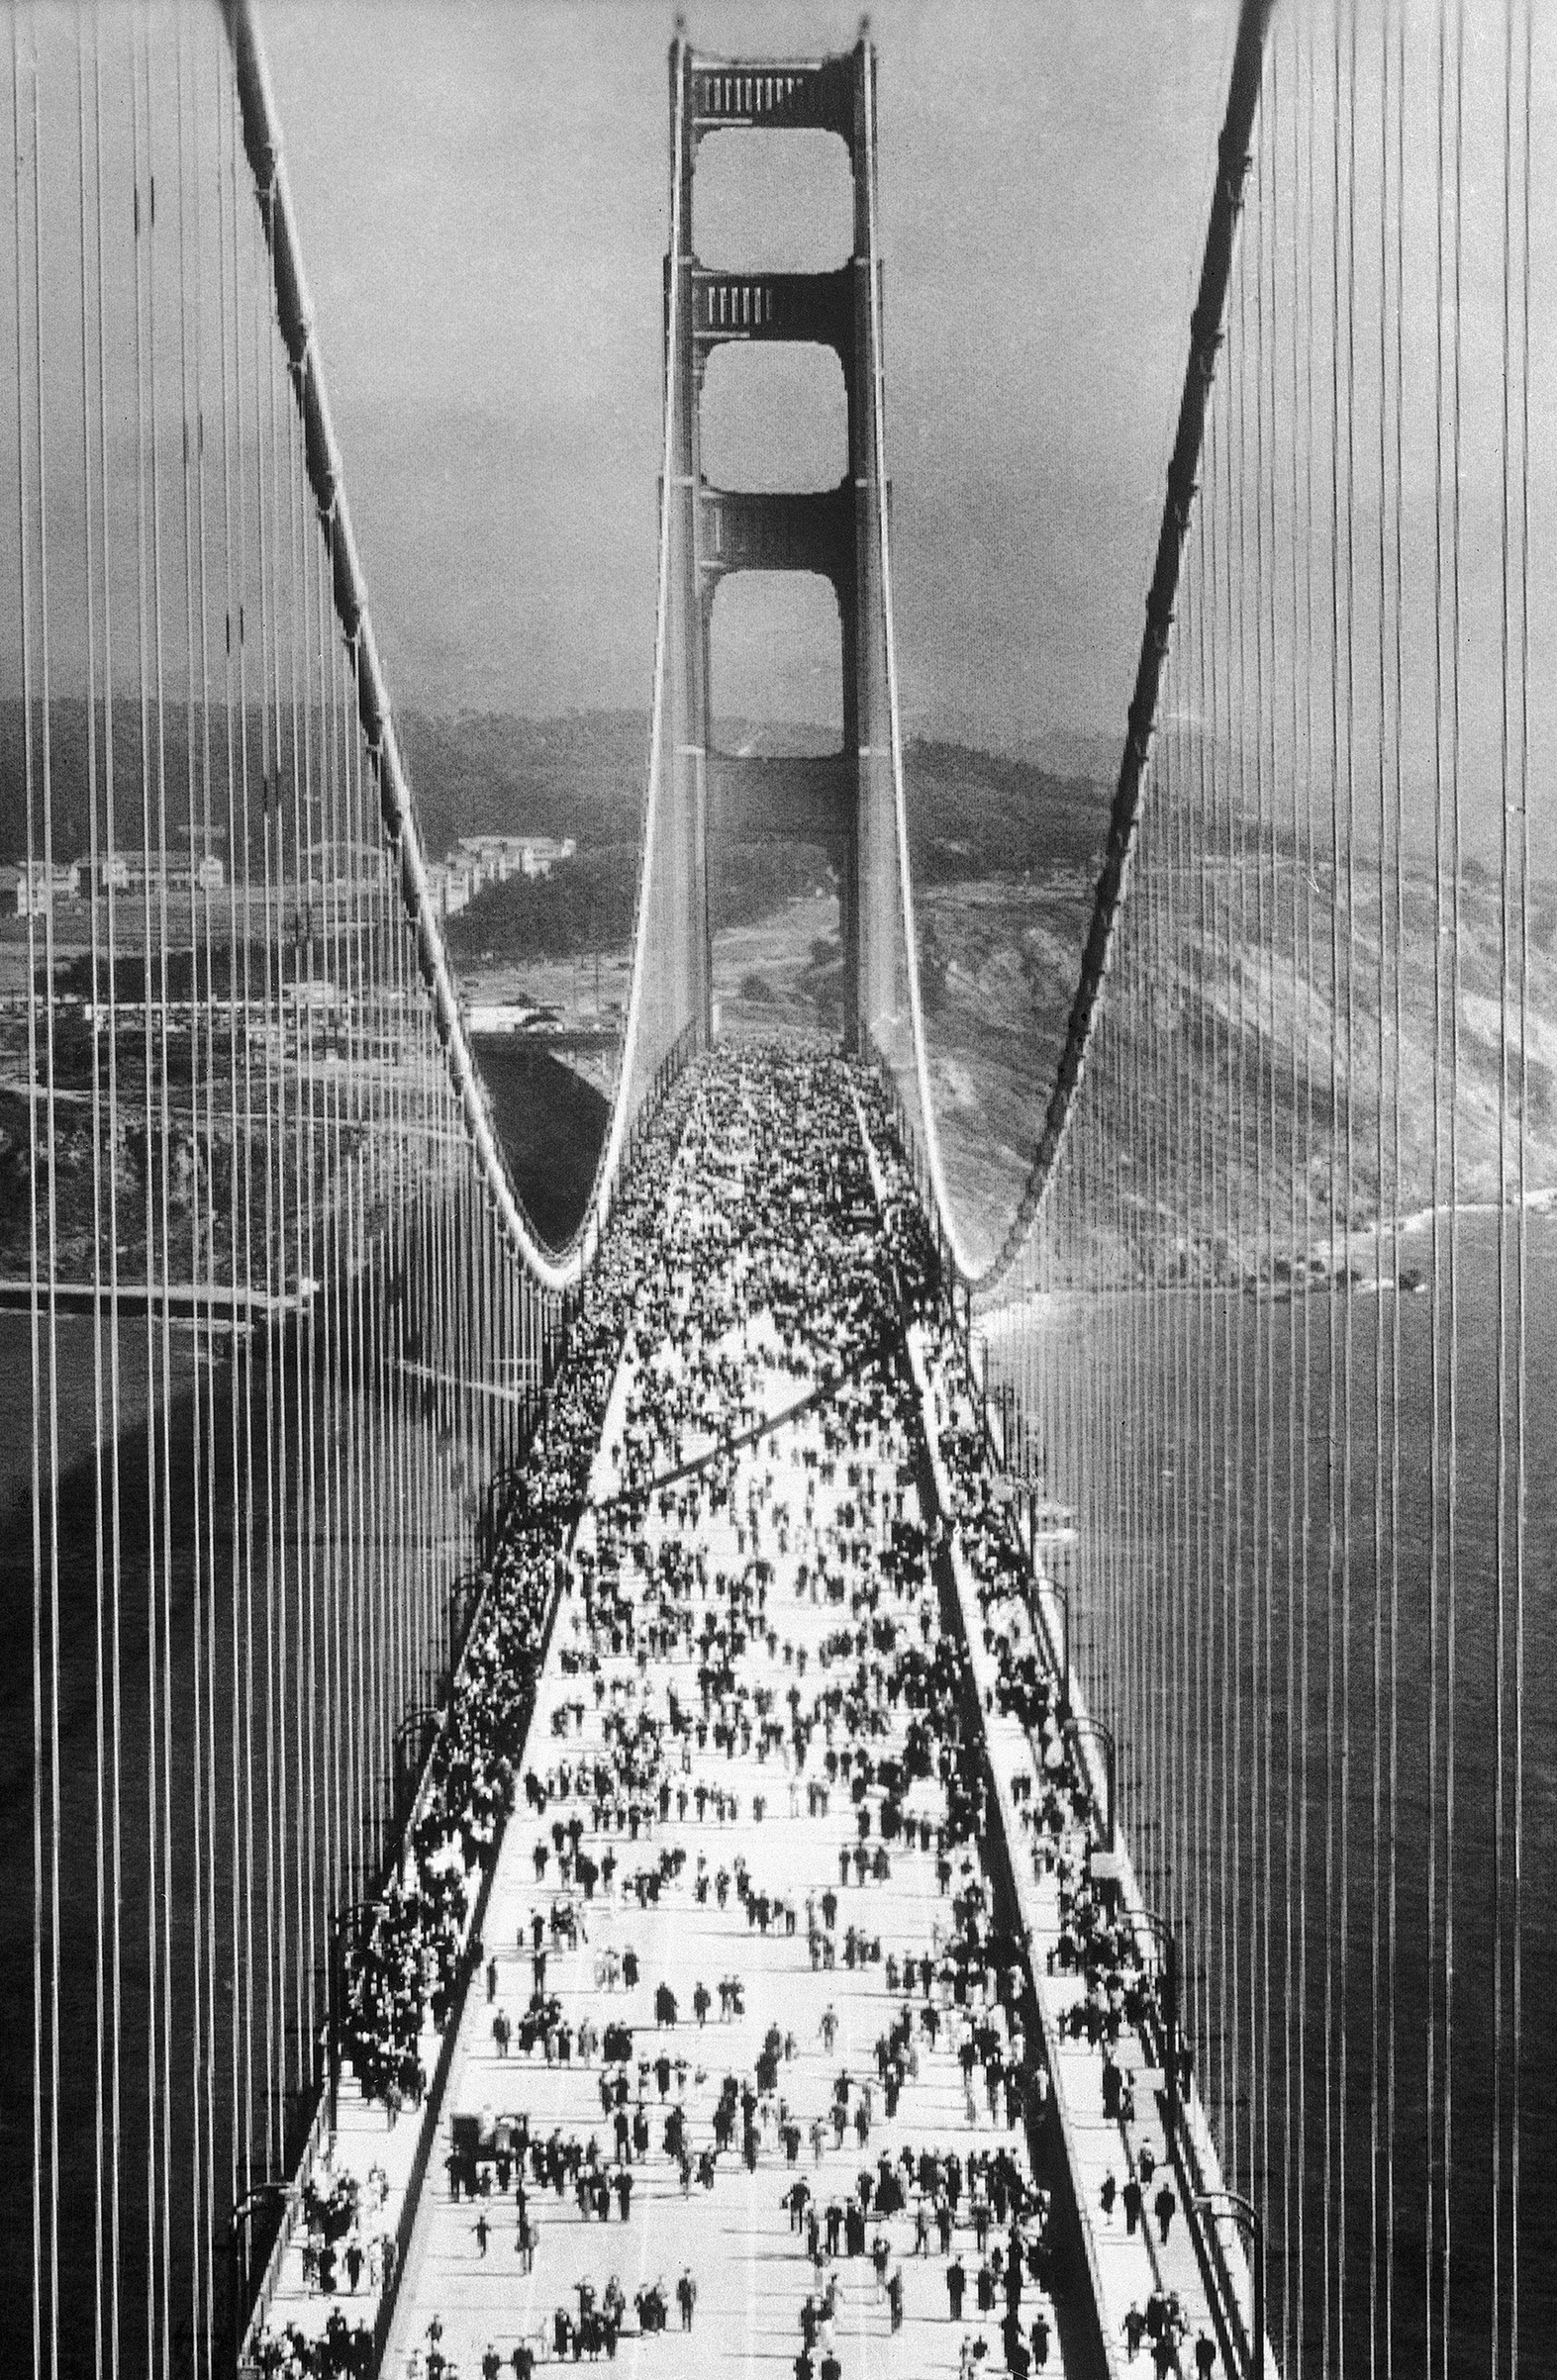 A view taken from one of the towers of the Golden Gate Bridge of pedestrians swarming across  immediately after the opening on May 27, 1937.